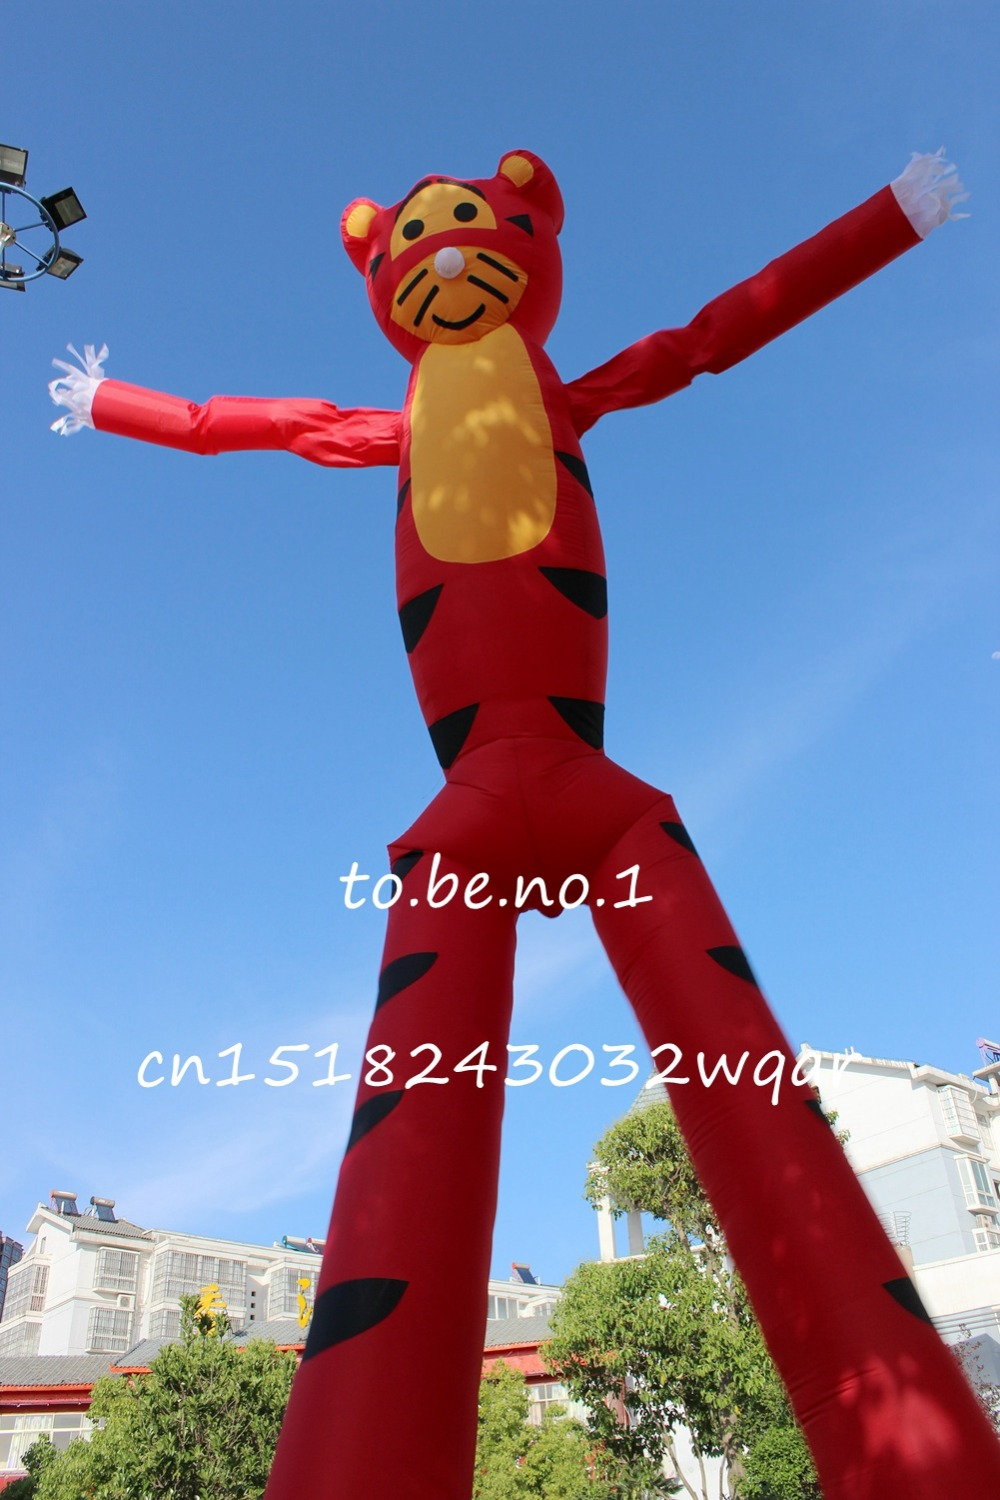 Inflatable Toys 6M 20FT Inflatable Tube Sky Dancer Air Dancer NO blower Inflatable Toys Shop ads sign S1008 цена и фото